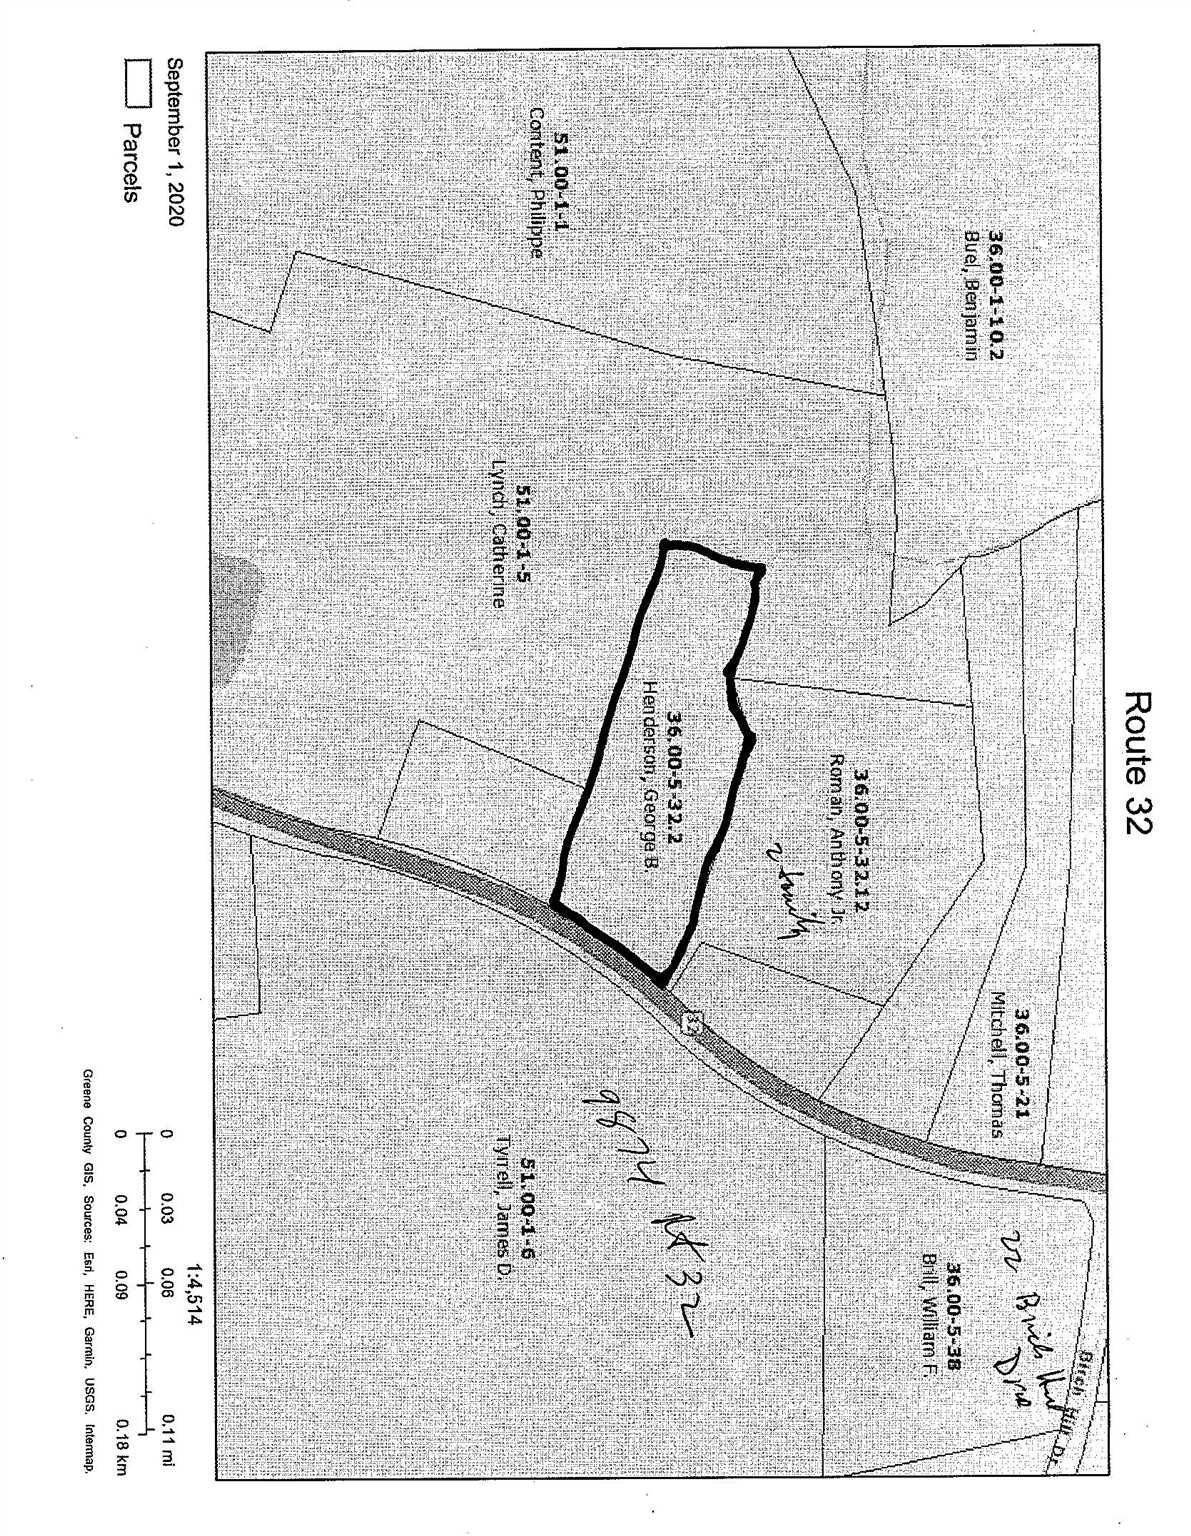 Land for Sale at STATE ROUTE 32 Cairo, New York 12413 United States